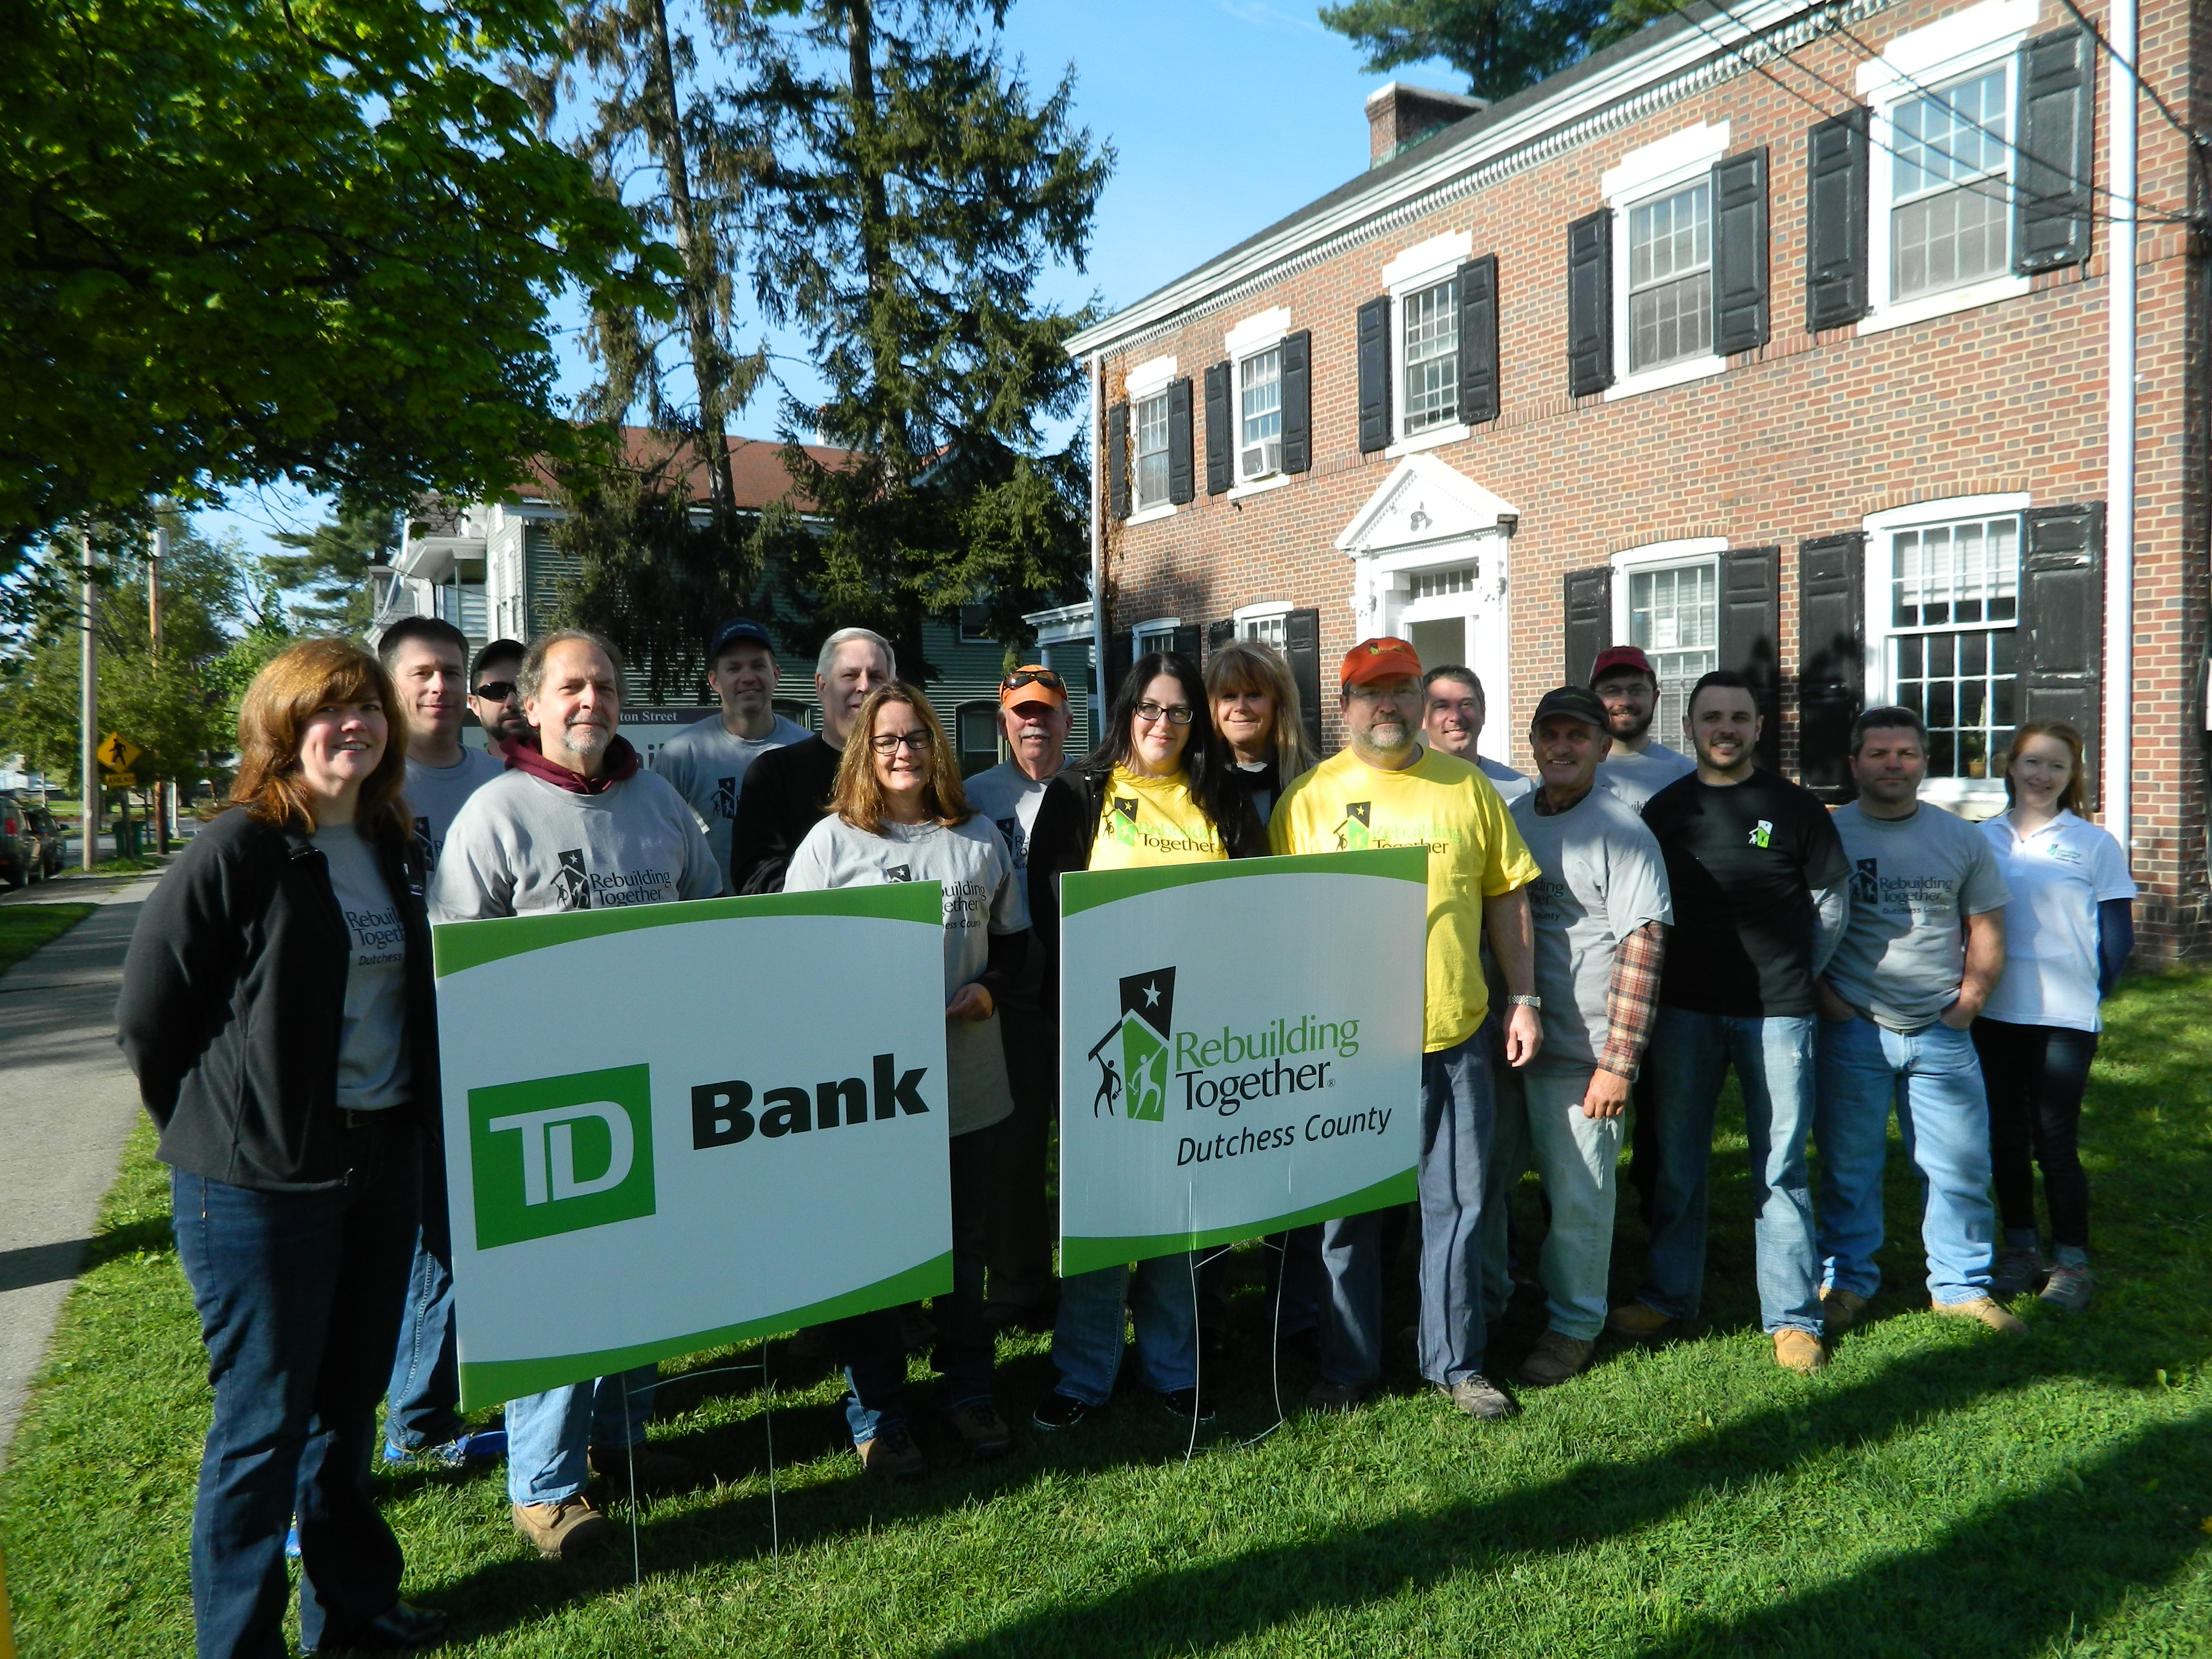 TD Bank volunteers